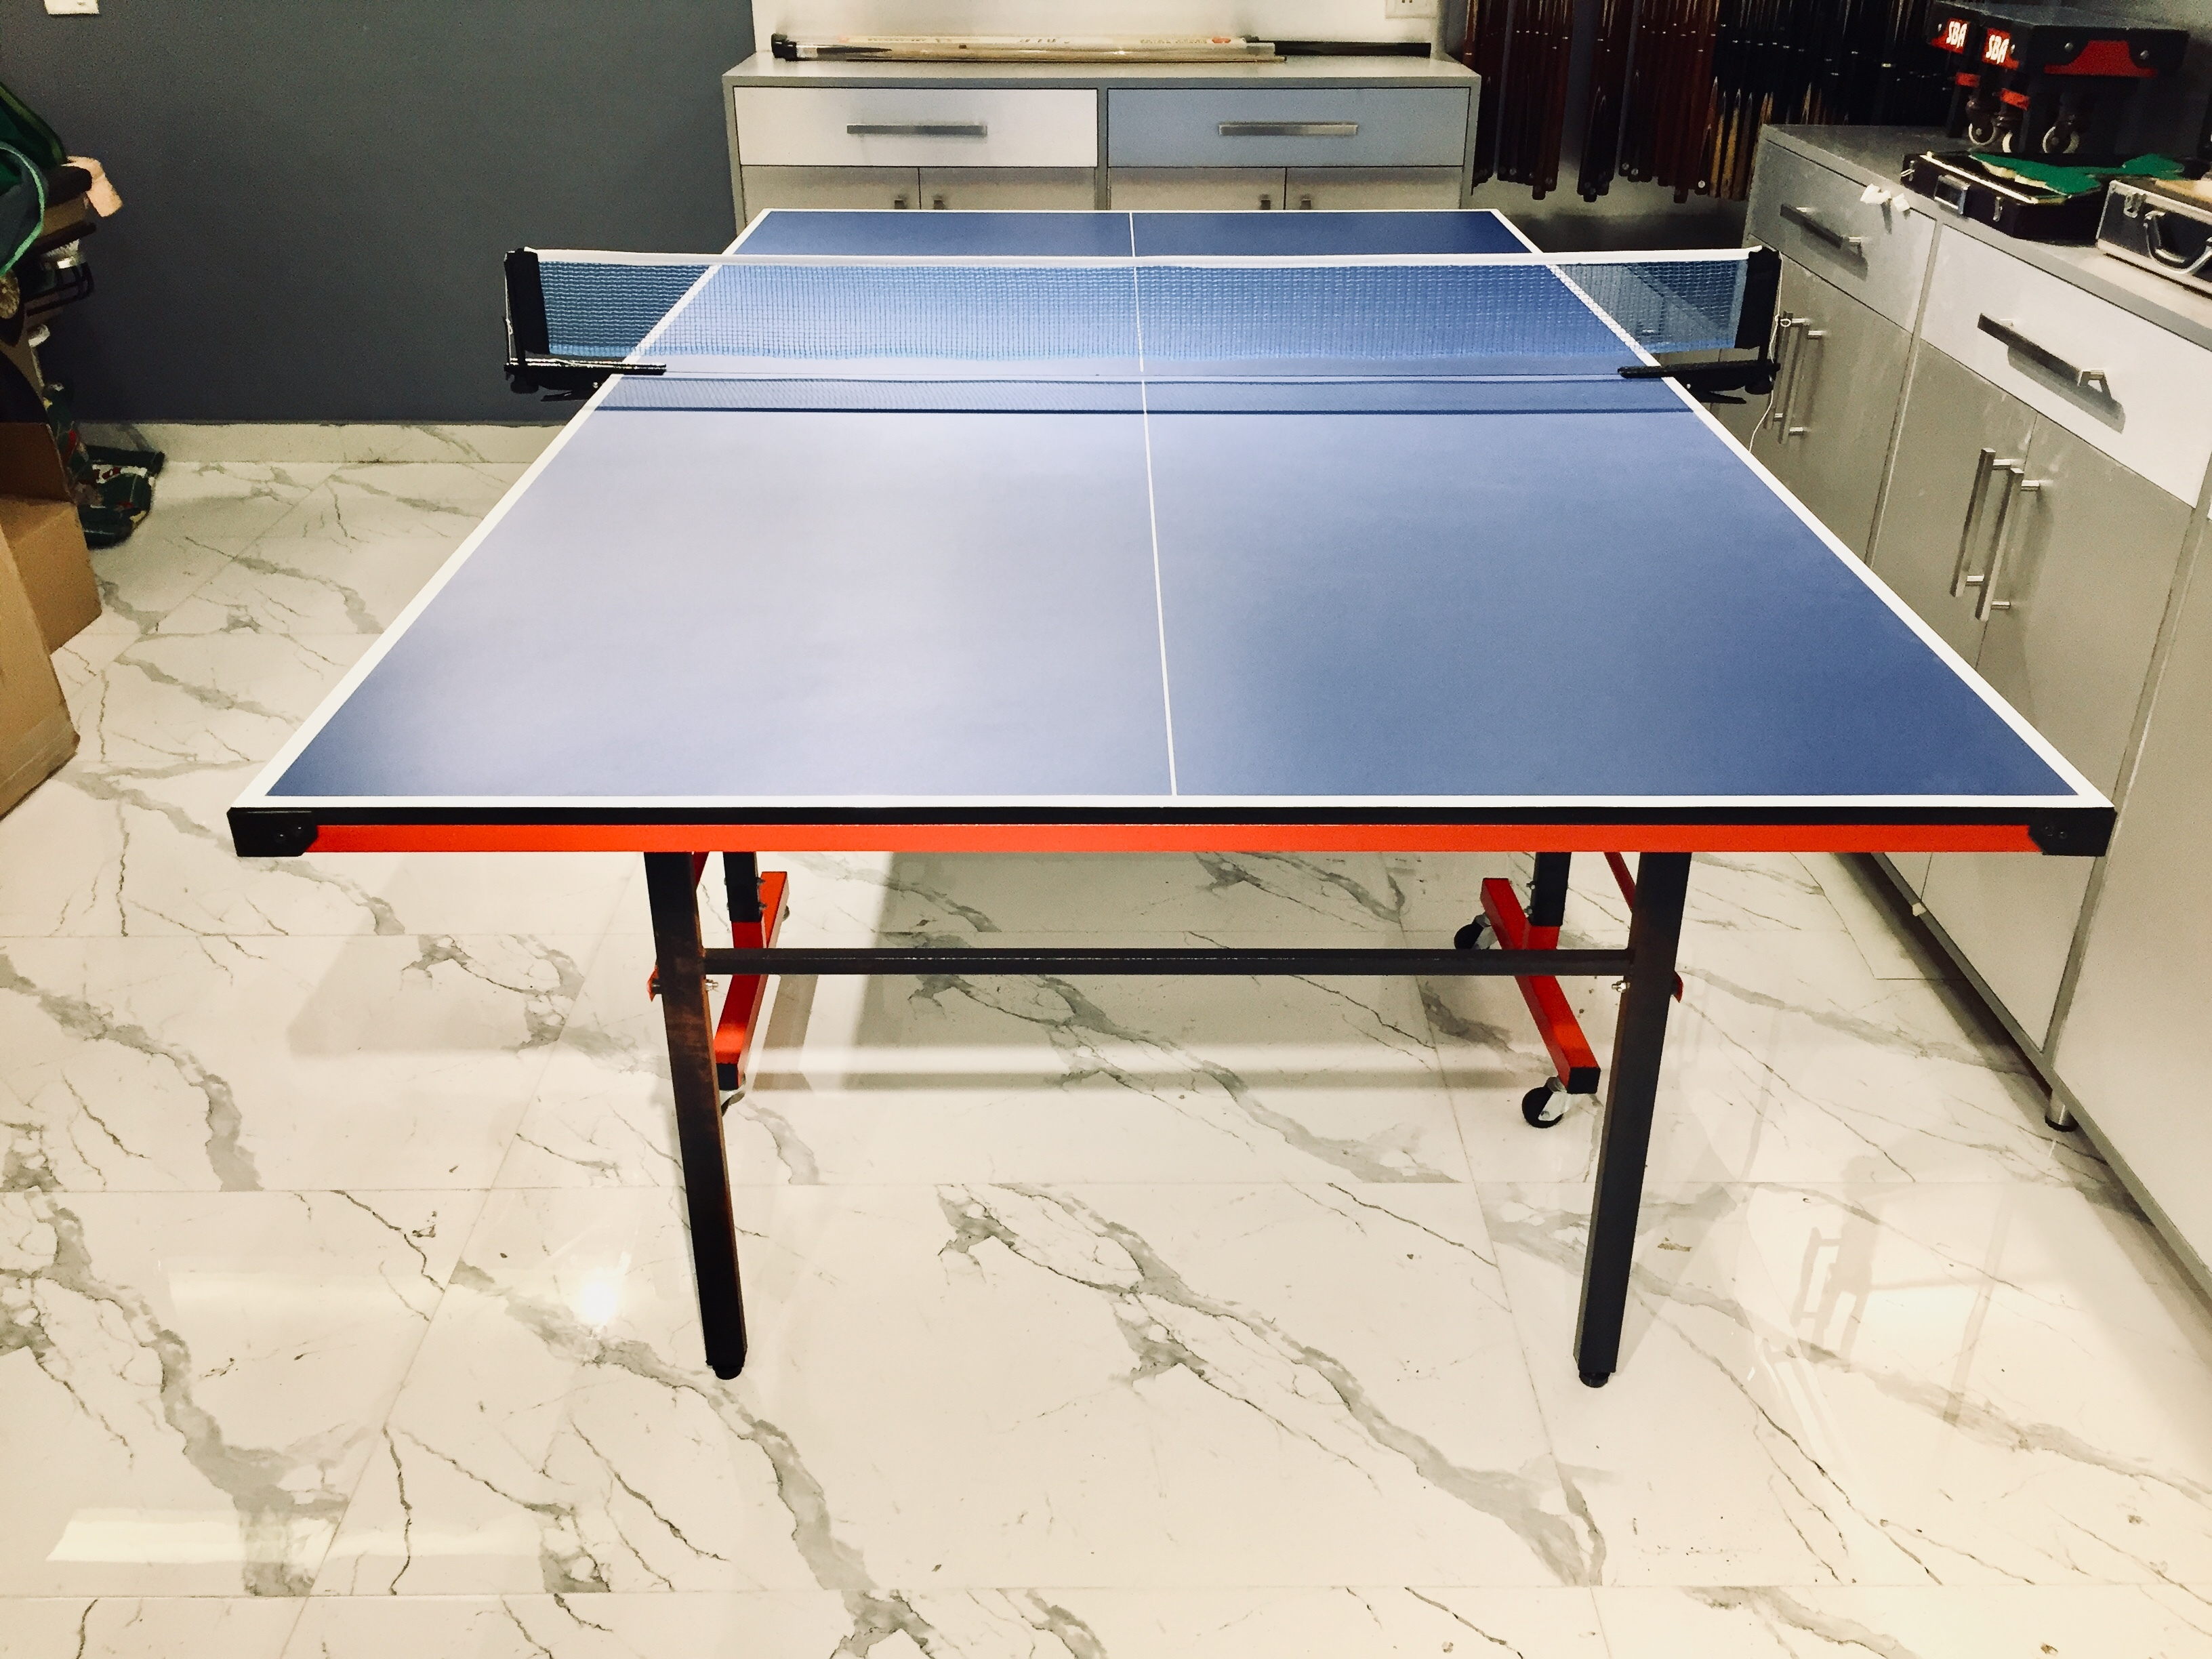 Euro Sports Table Tennis Table